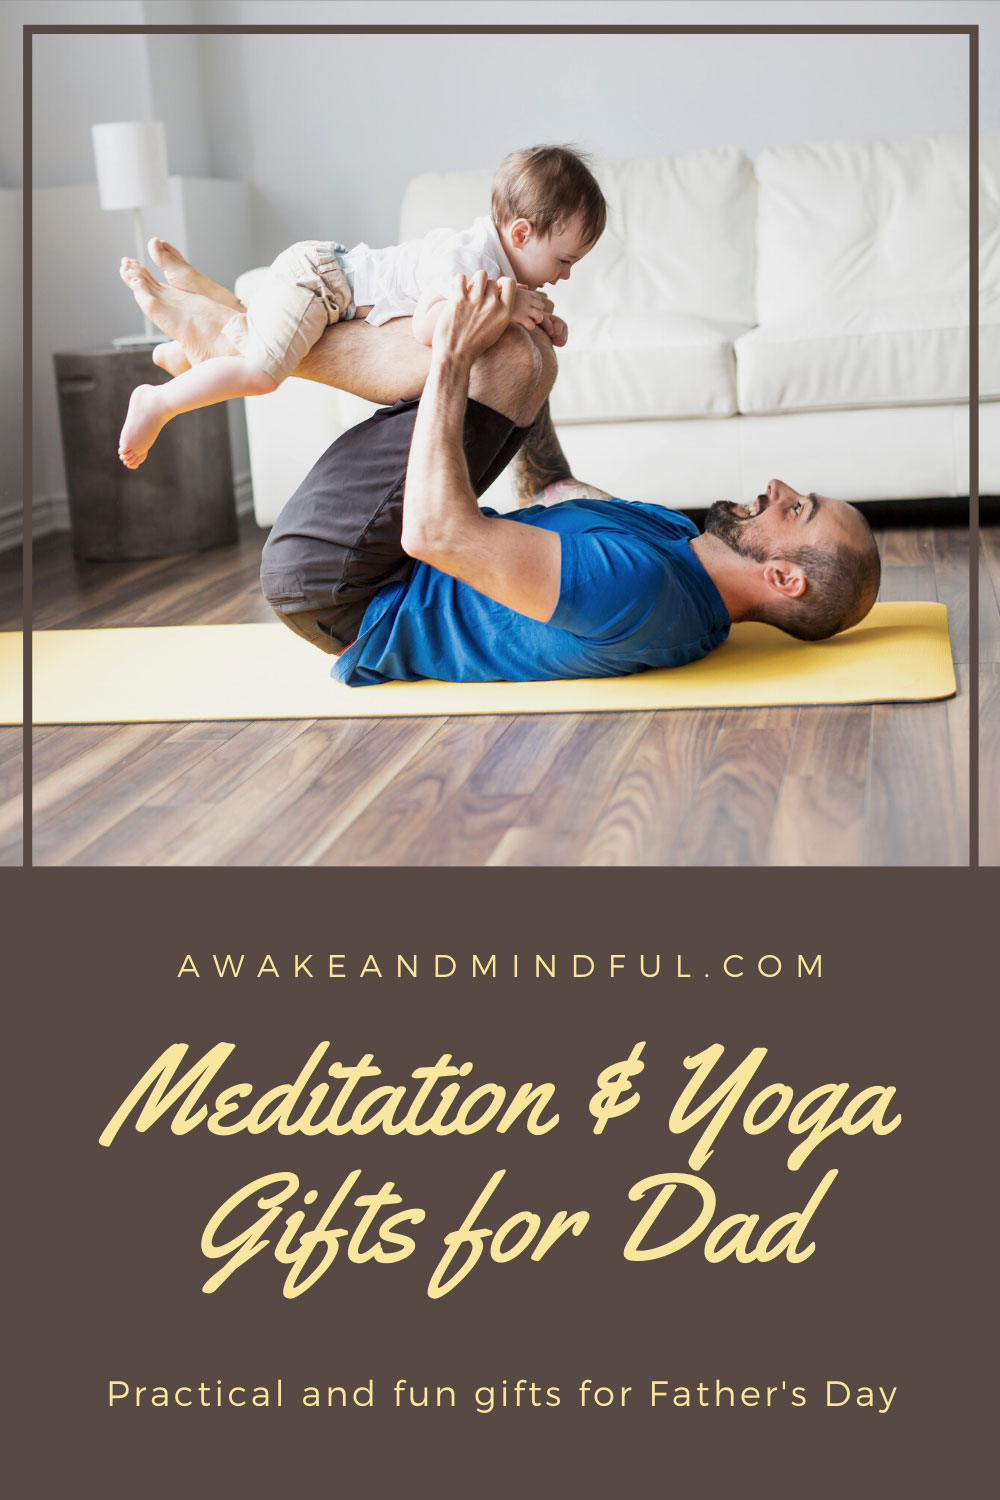 15 Father's Day Meditation & Yoga Gifts for Dad